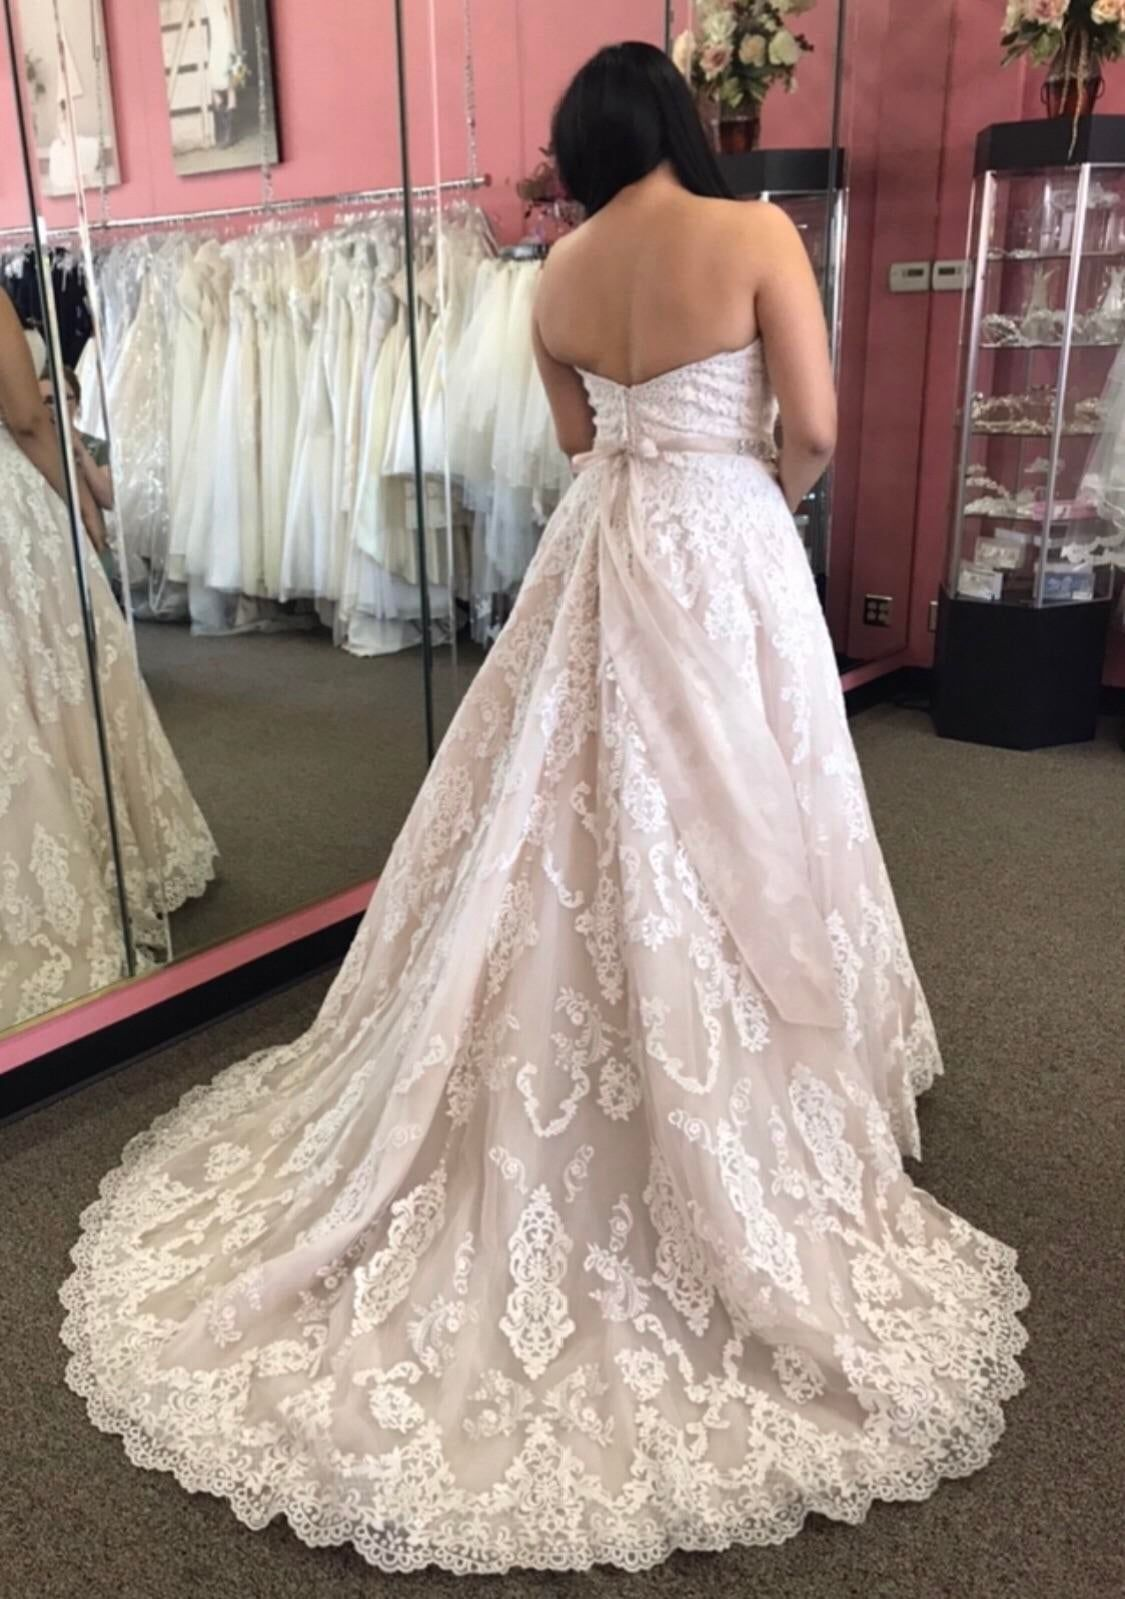 Less Than Three Months Until I Finally Get The Wear My Dream Dress Any Jewelry Ideas For A Strapless Sweethea Dream Dress Wedding Dresses Lace Wedding Dresses